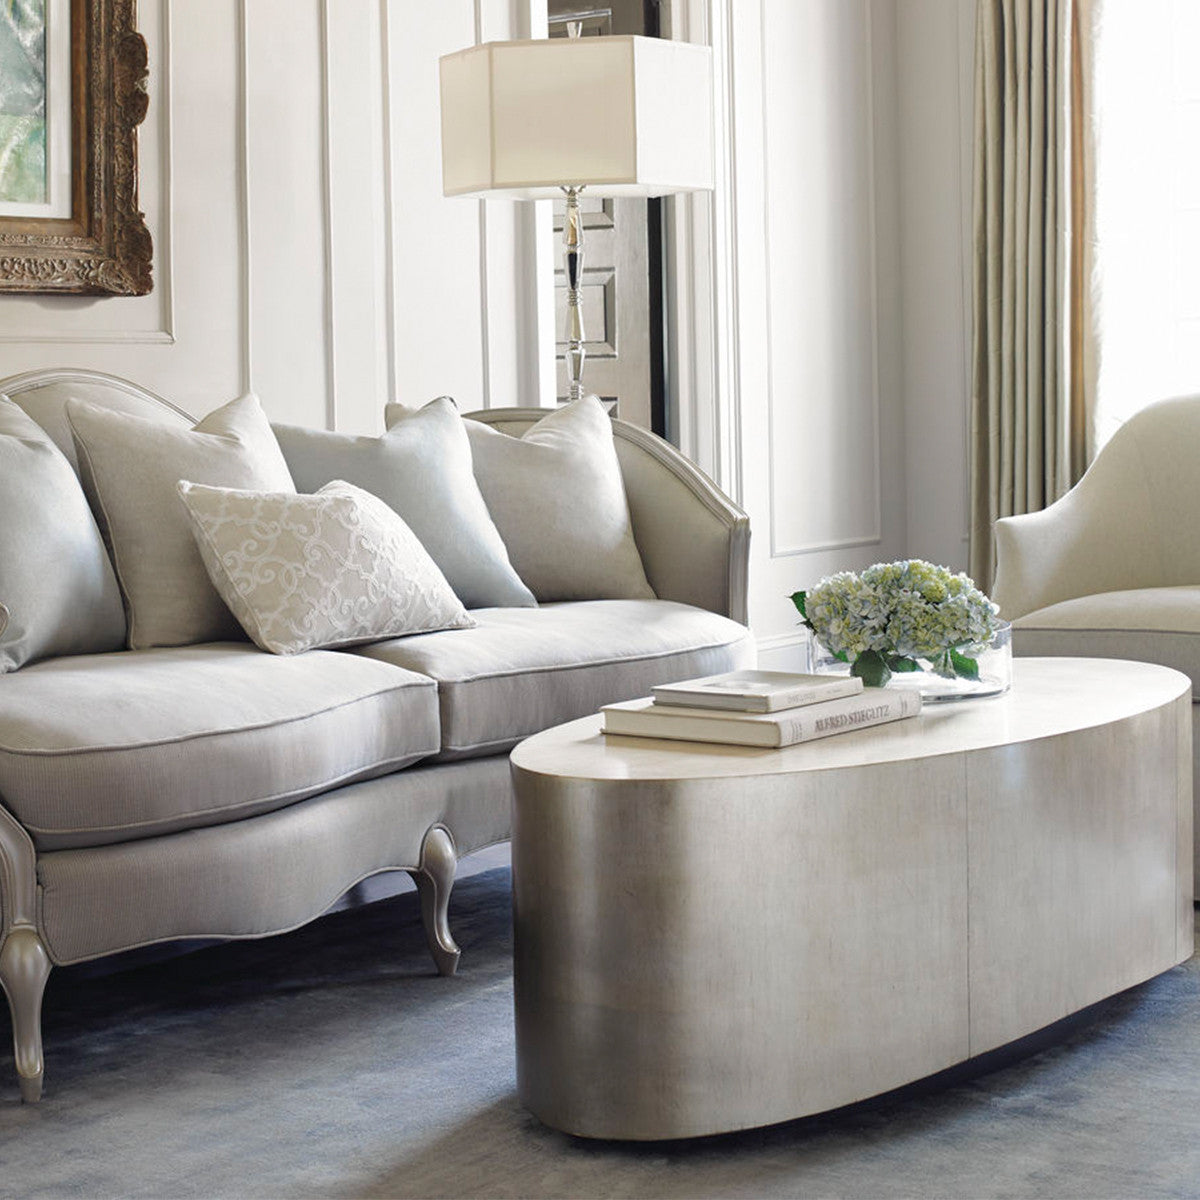 HARLOW OVAL GOLD LEAF COFFEE TABLE